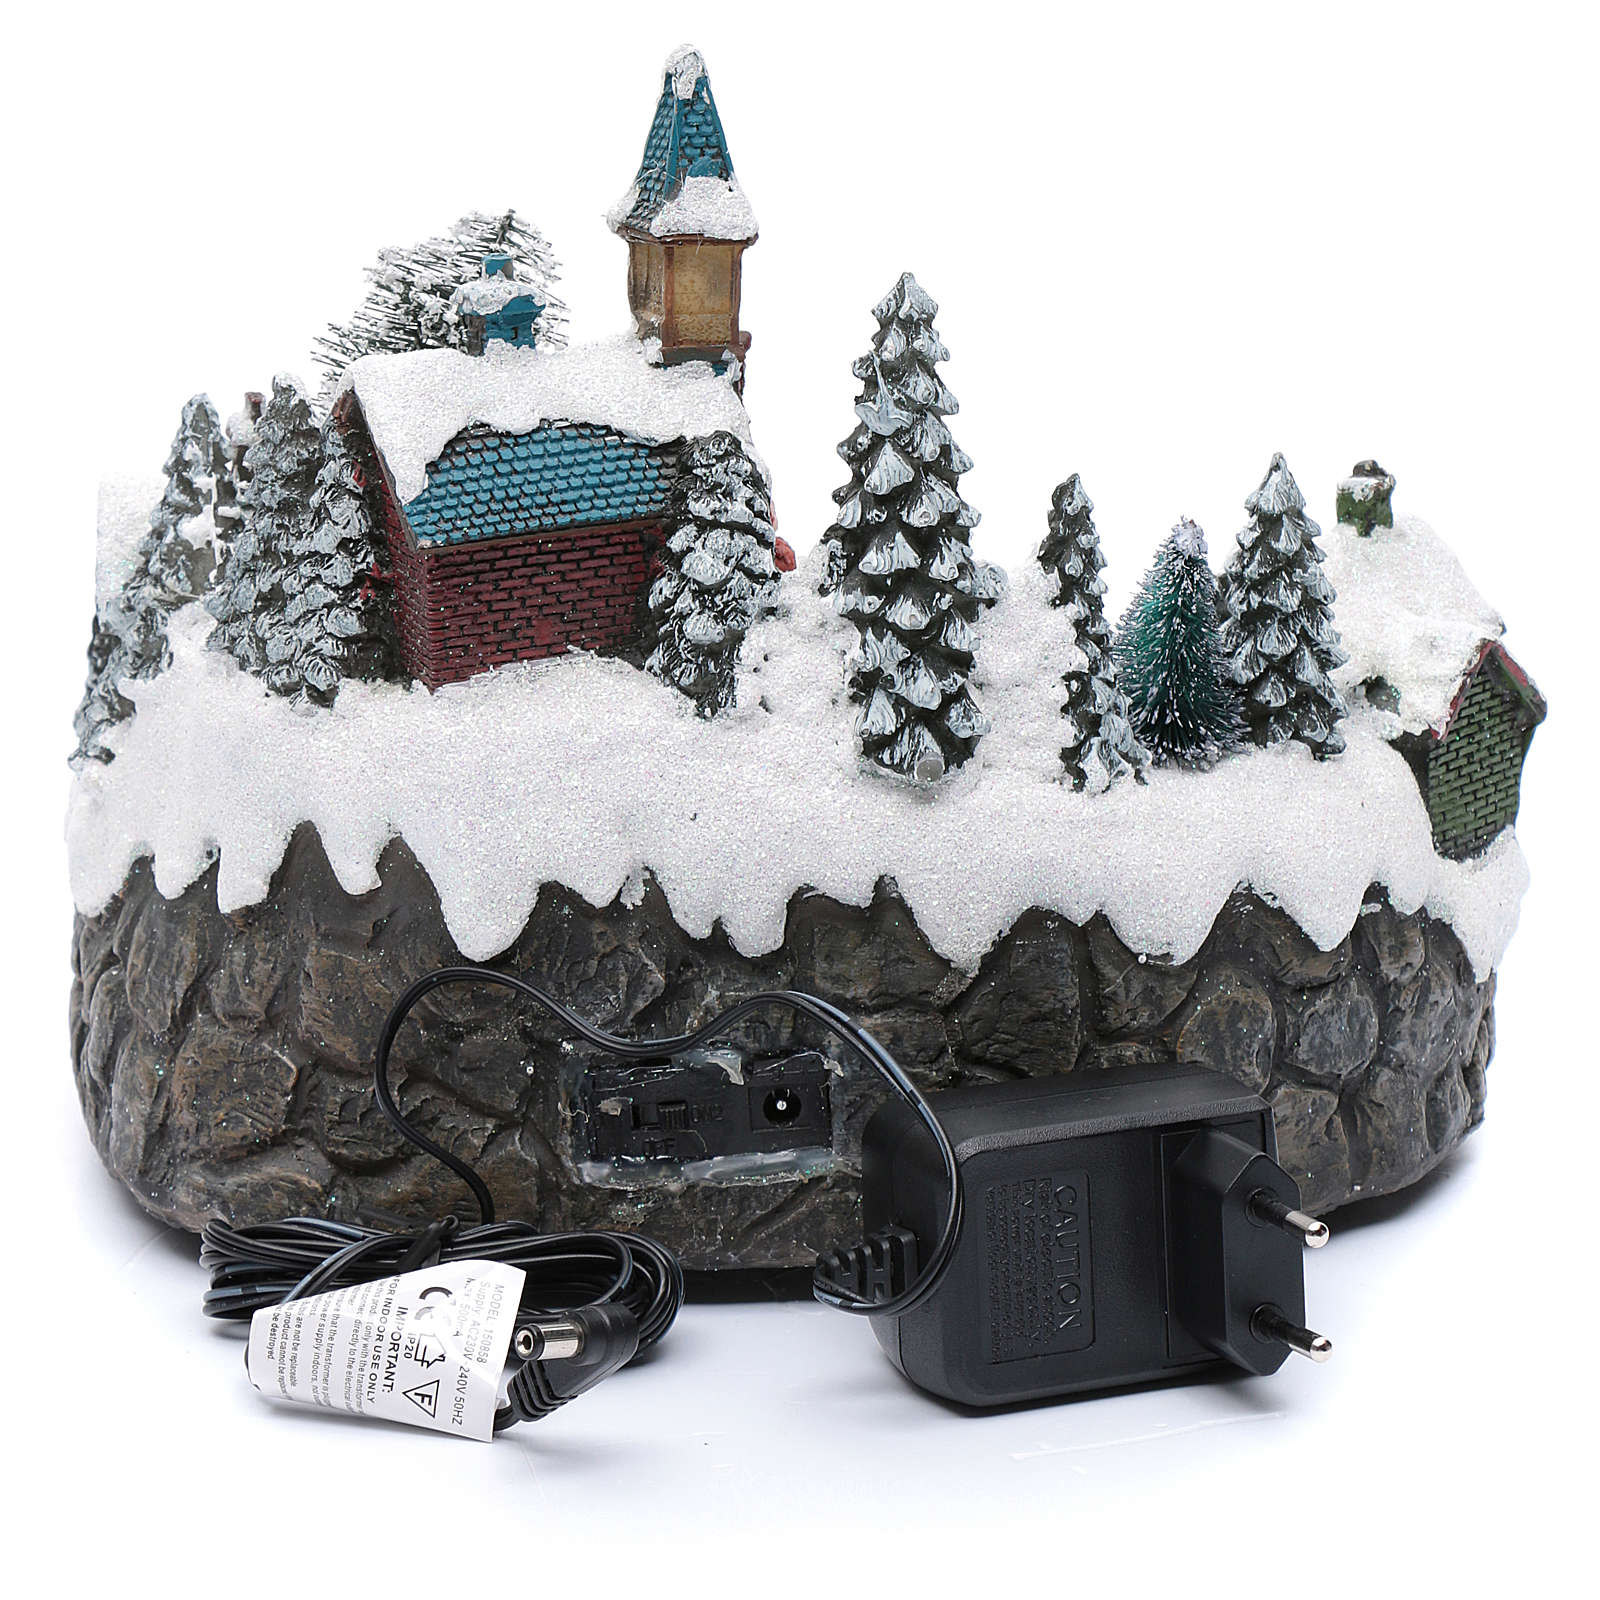 Animated village with ice skating and stream  20x25x20 cm 3